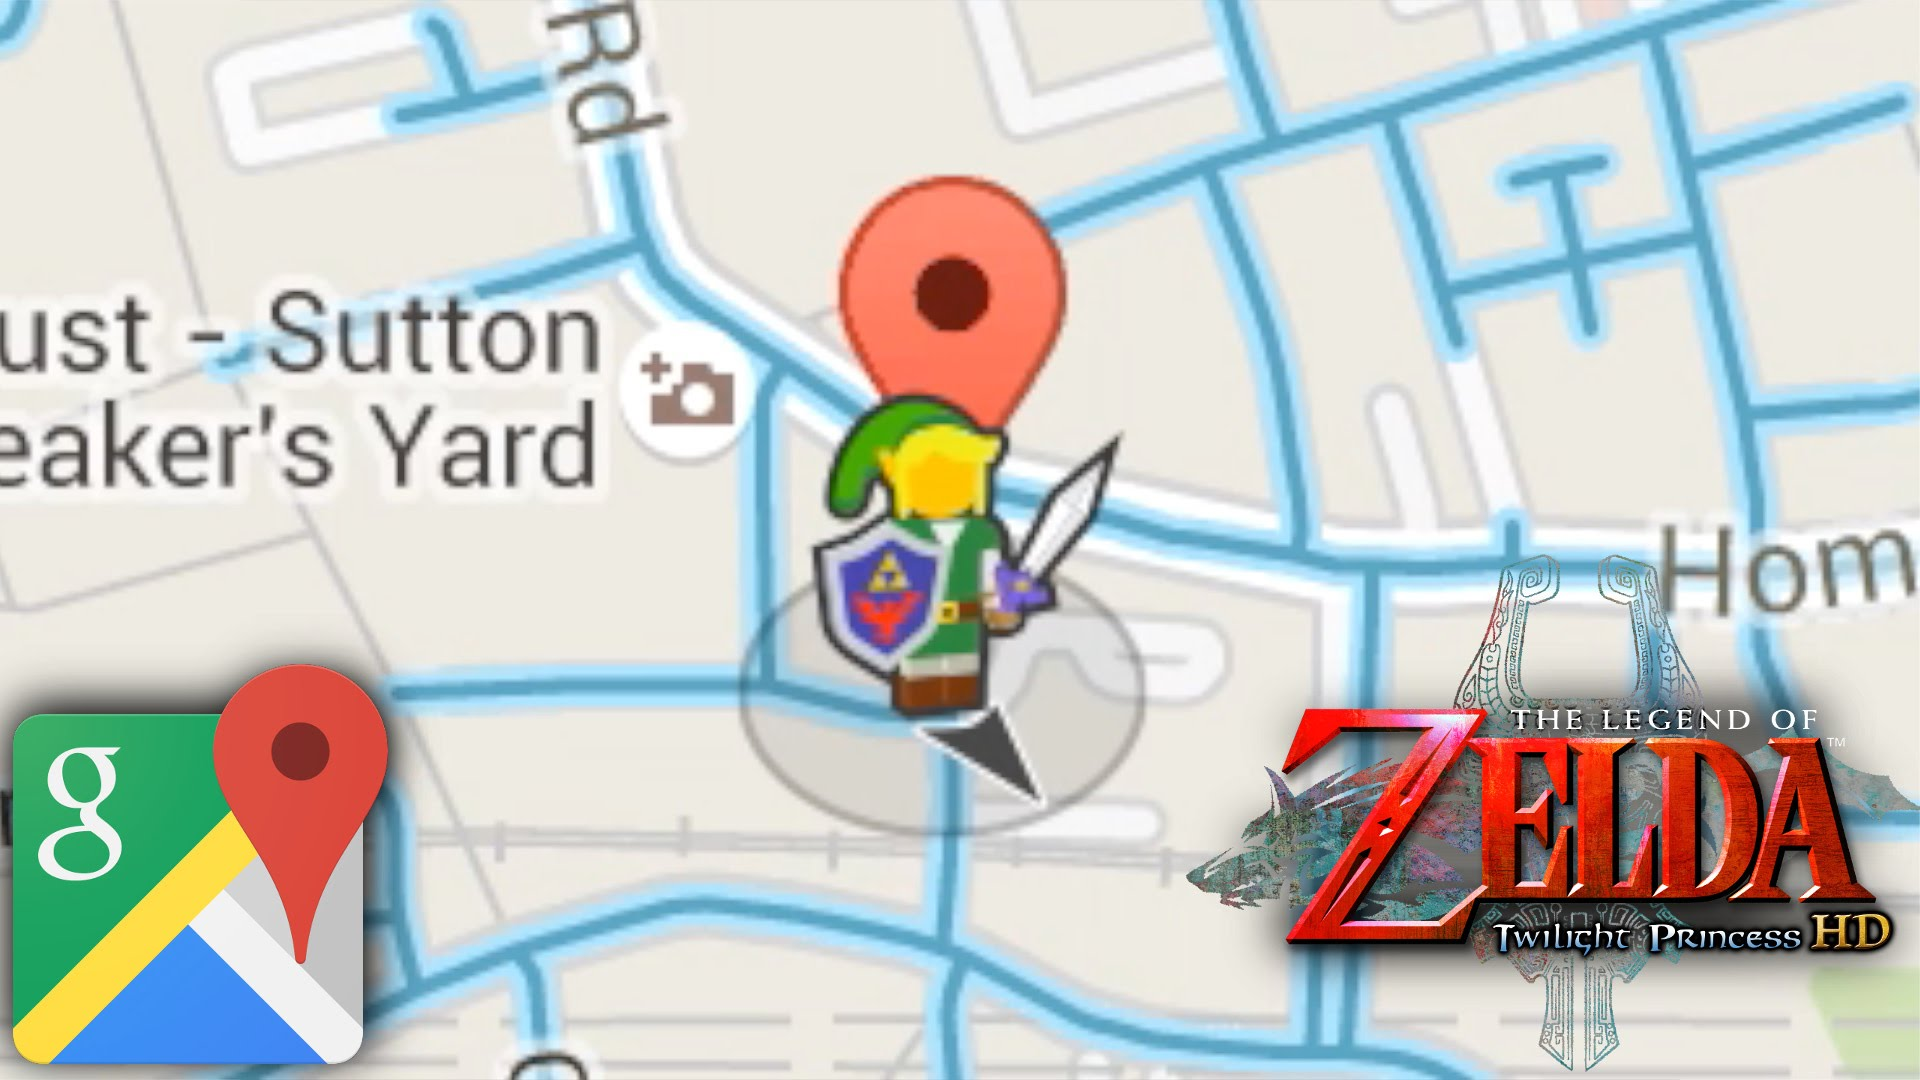 Google Maps Gets Link Guide for Zelda Twighlight Princess